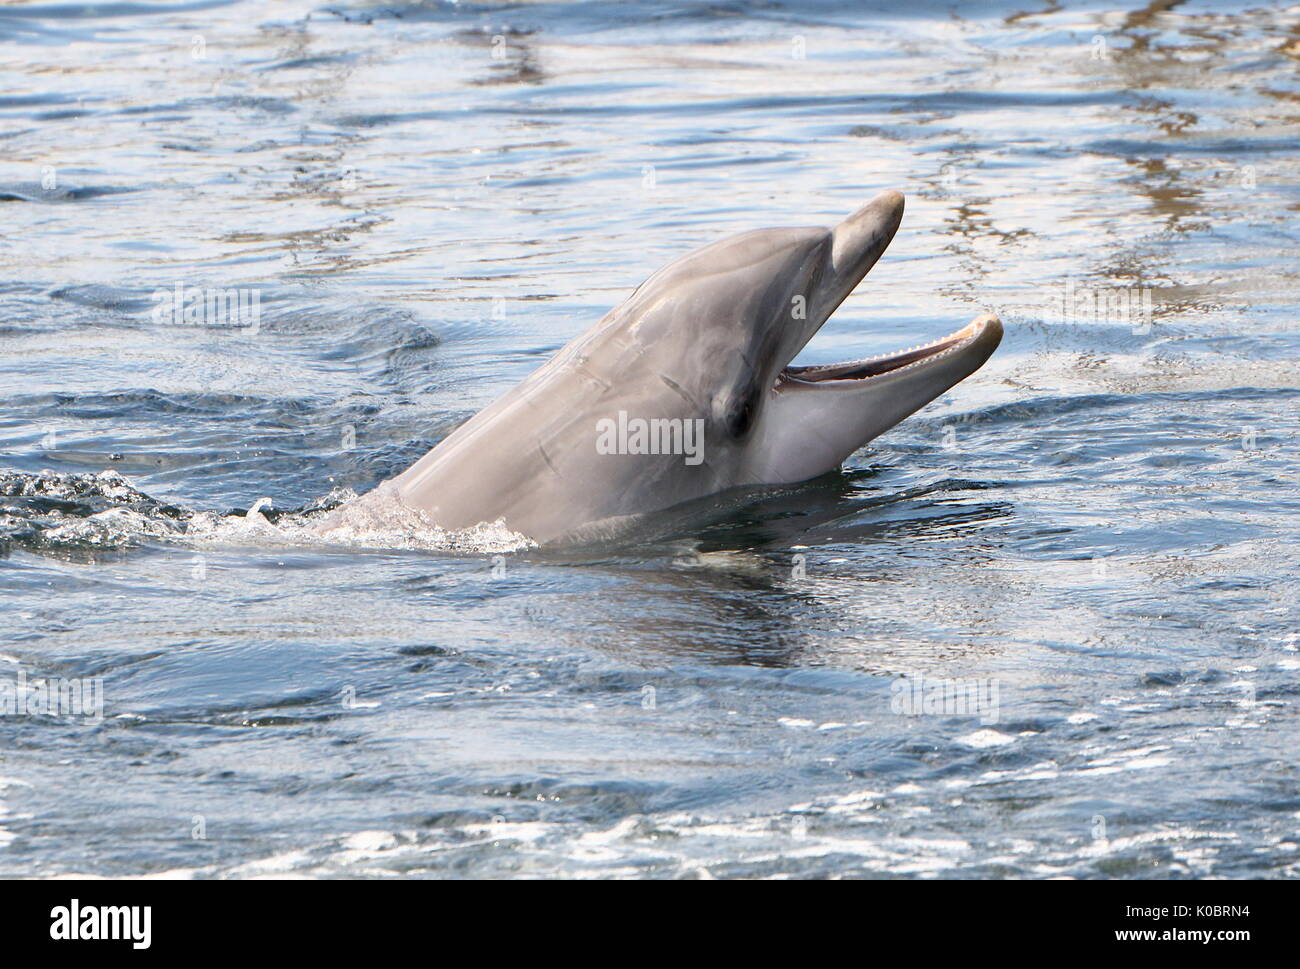 Atlantic Bottle-nose dolphin (Tursiops truncatus) surfacing, close up of the head. - Stock Image